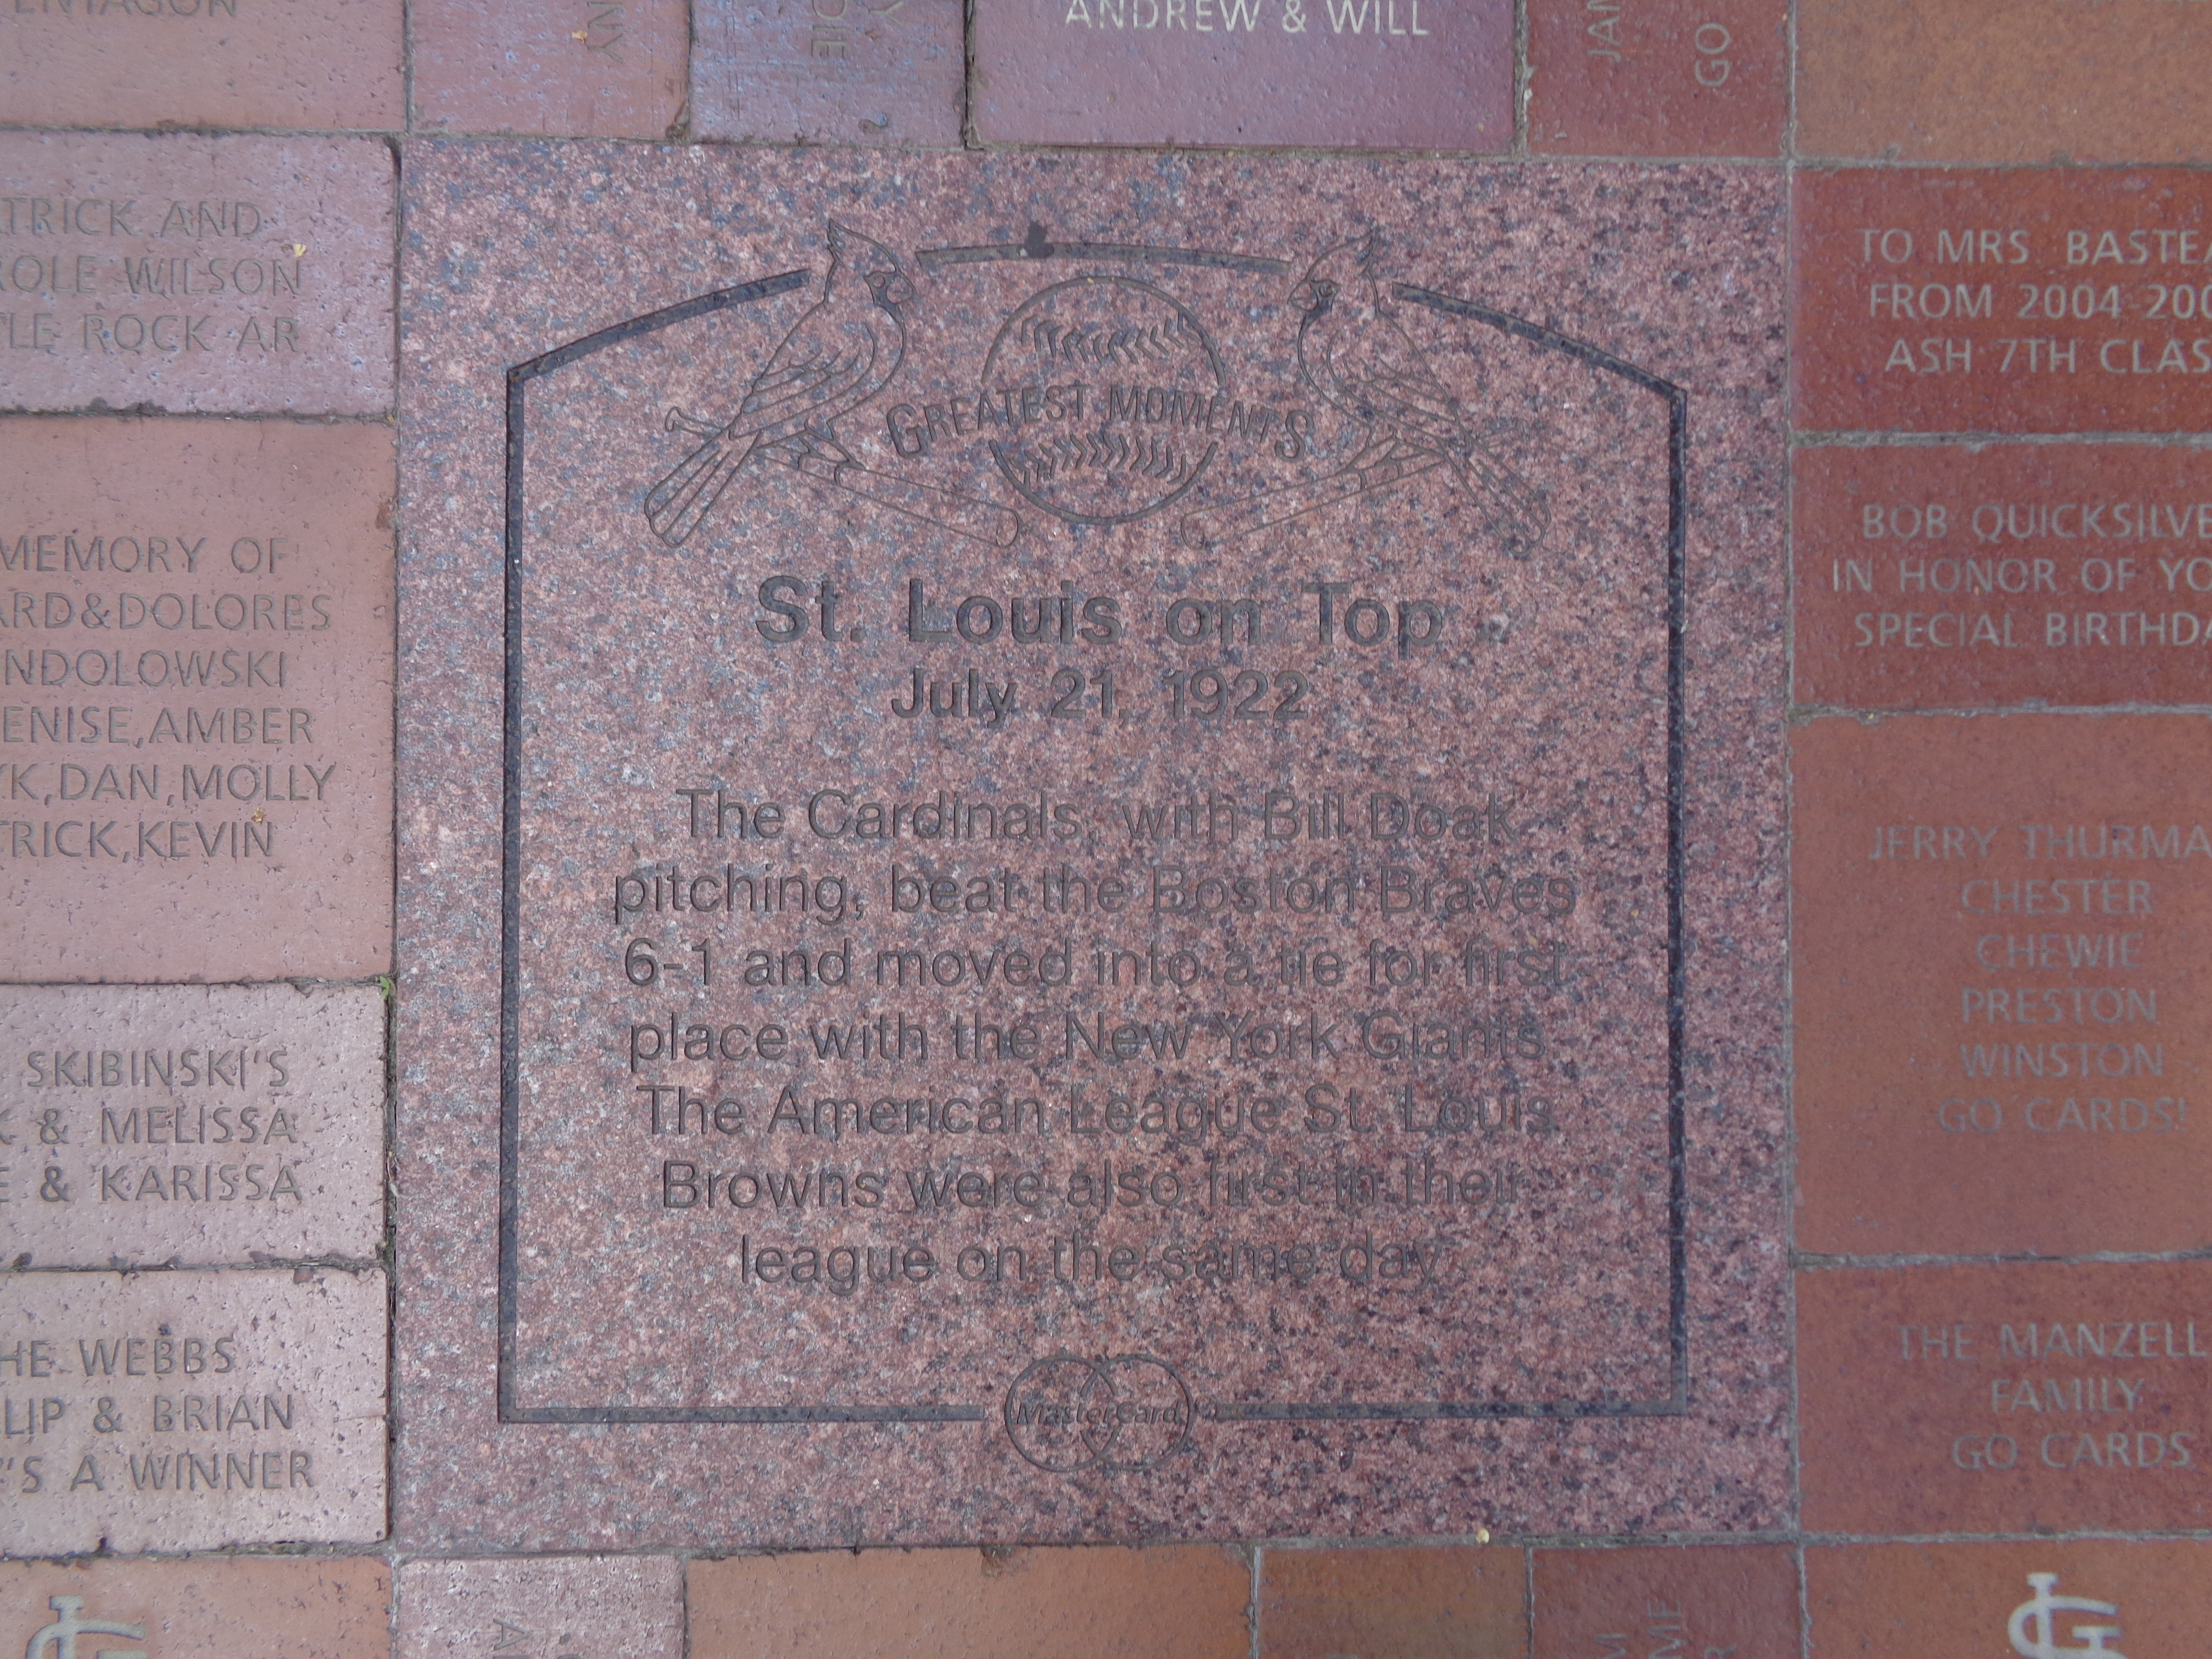 St. Louis on Top Marker